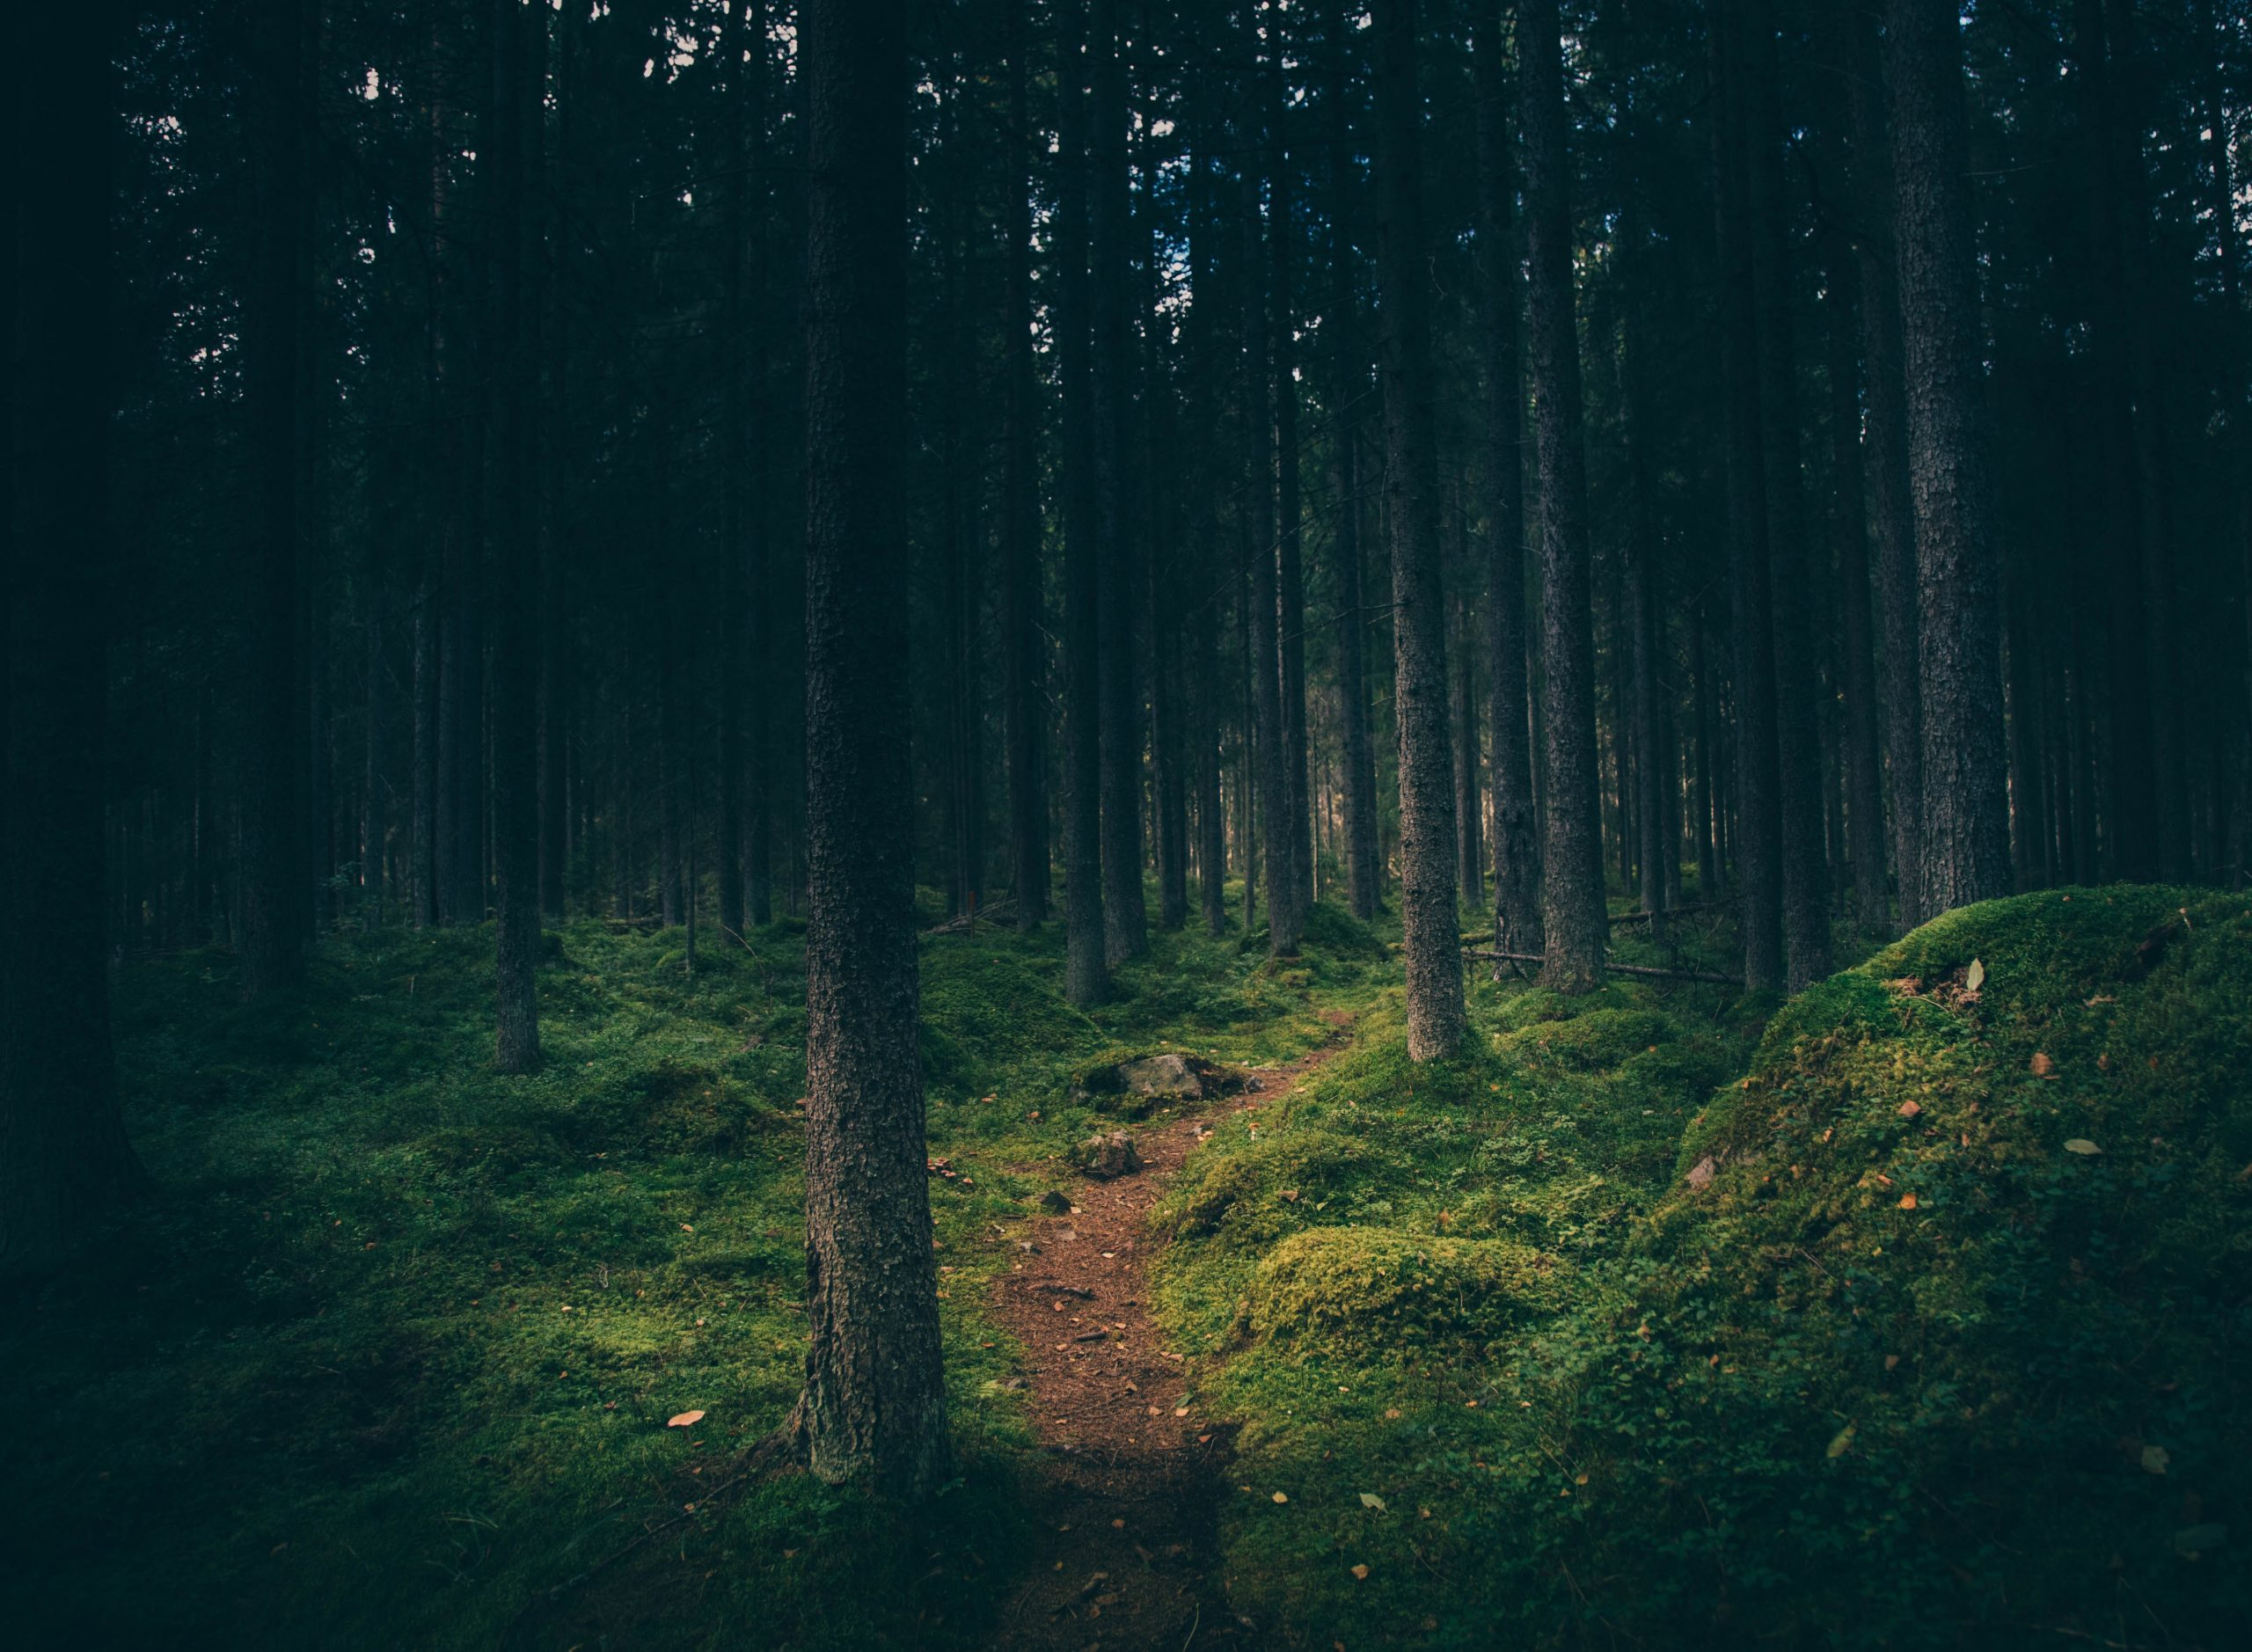 Lost in the woods - thinking - Petors - good mental health for all